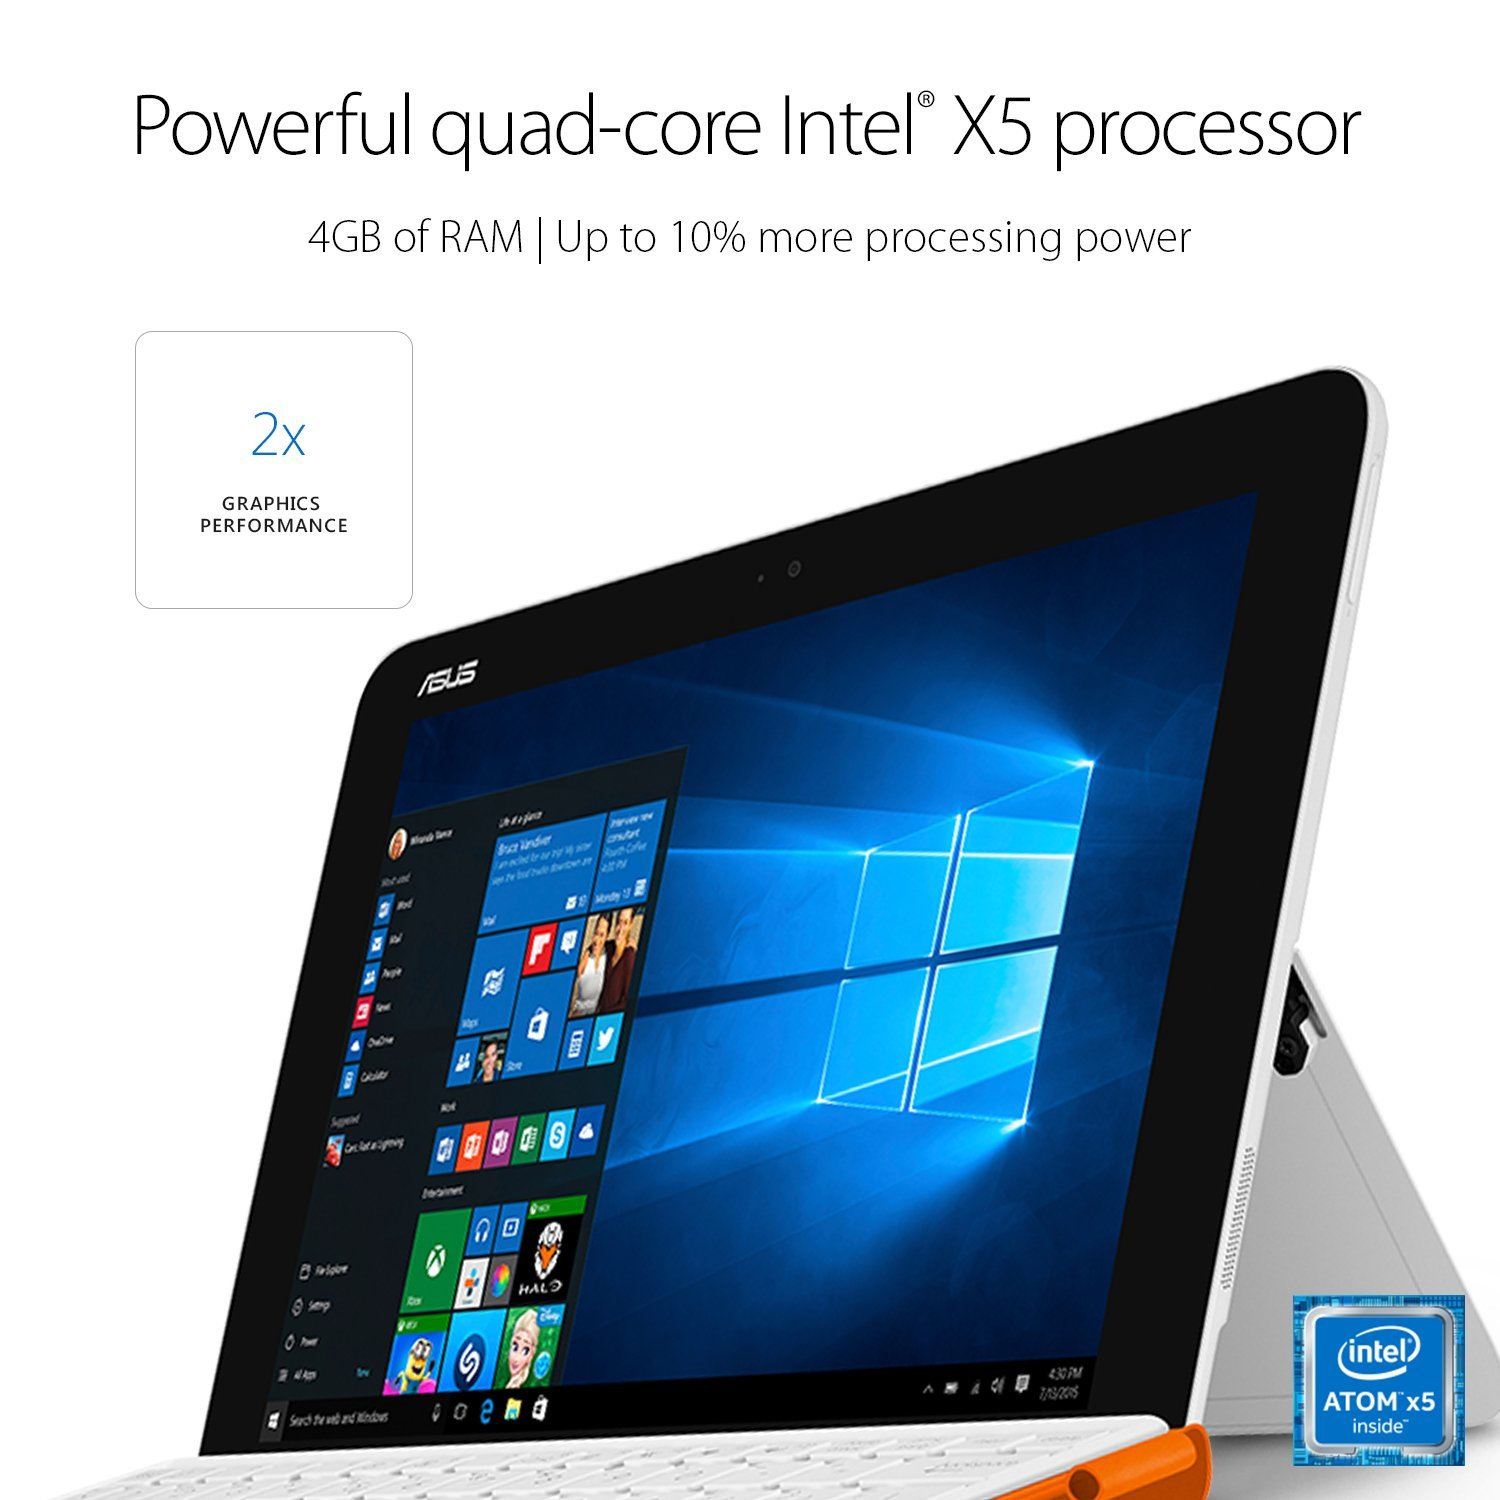 "ASUS T102HA-C4-WH Transformer Book 10.1"" 2 in 1 Touchscreen Laptop, Intel Quad-Core, White, pen and keyboard included"